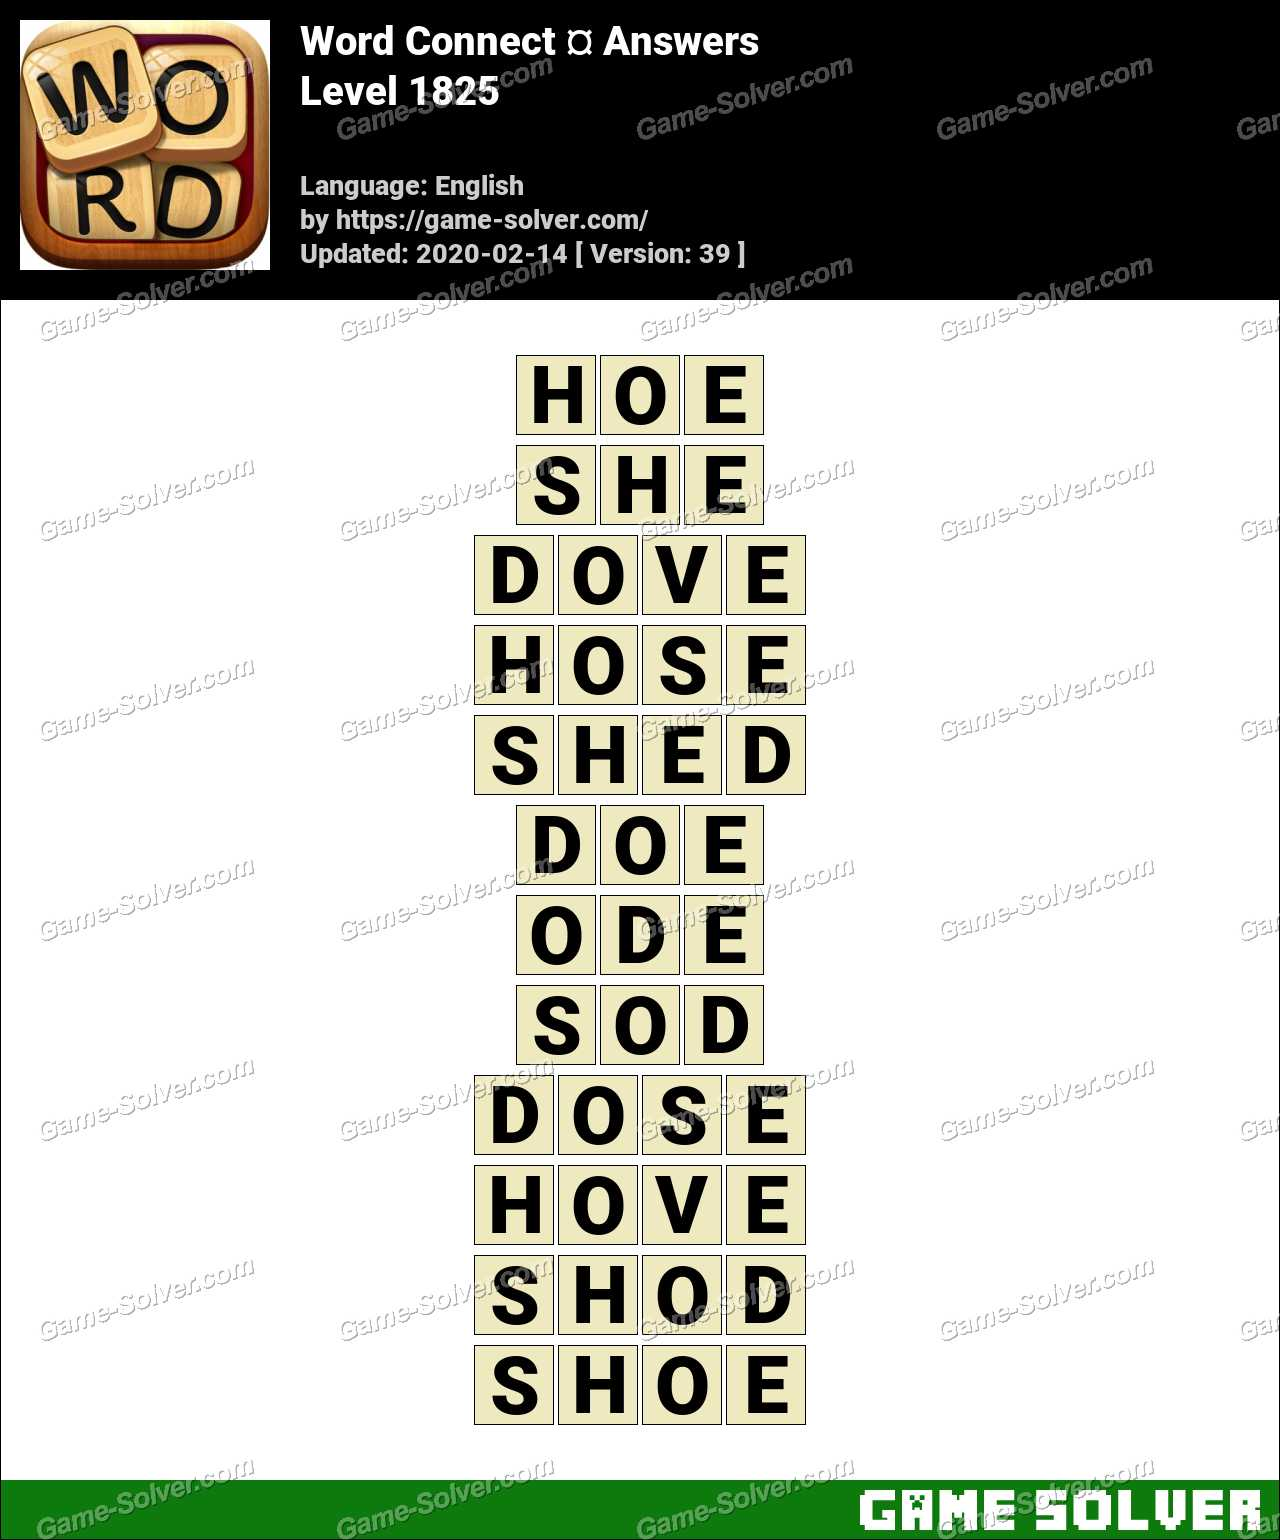 Word Connect Level 1825 Answers